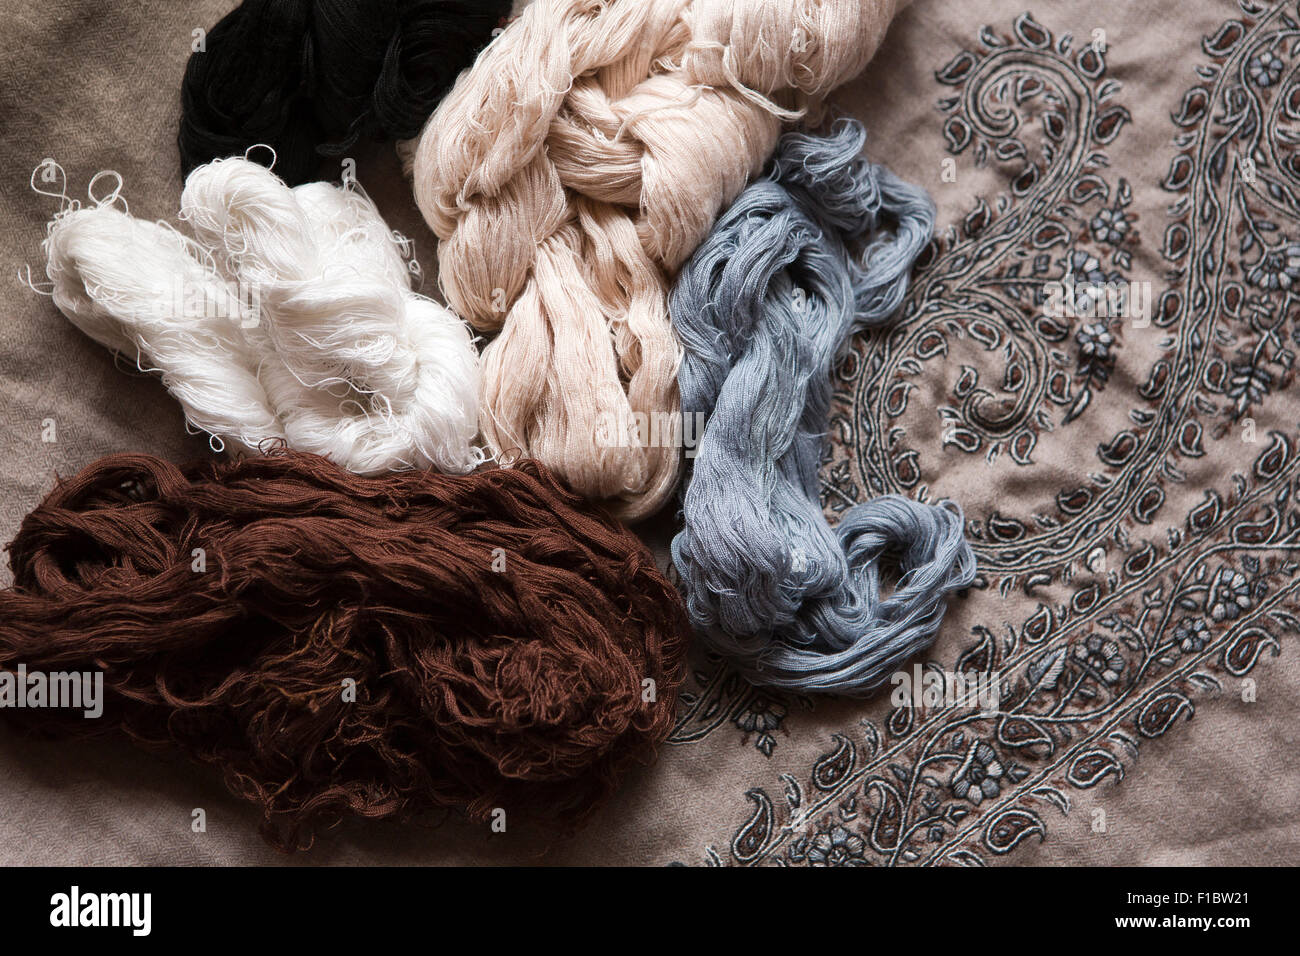 India, Jammu & Kashmir, Srinagar, muted natural neutral coloured pashmina embroiderery threads - Stock Image